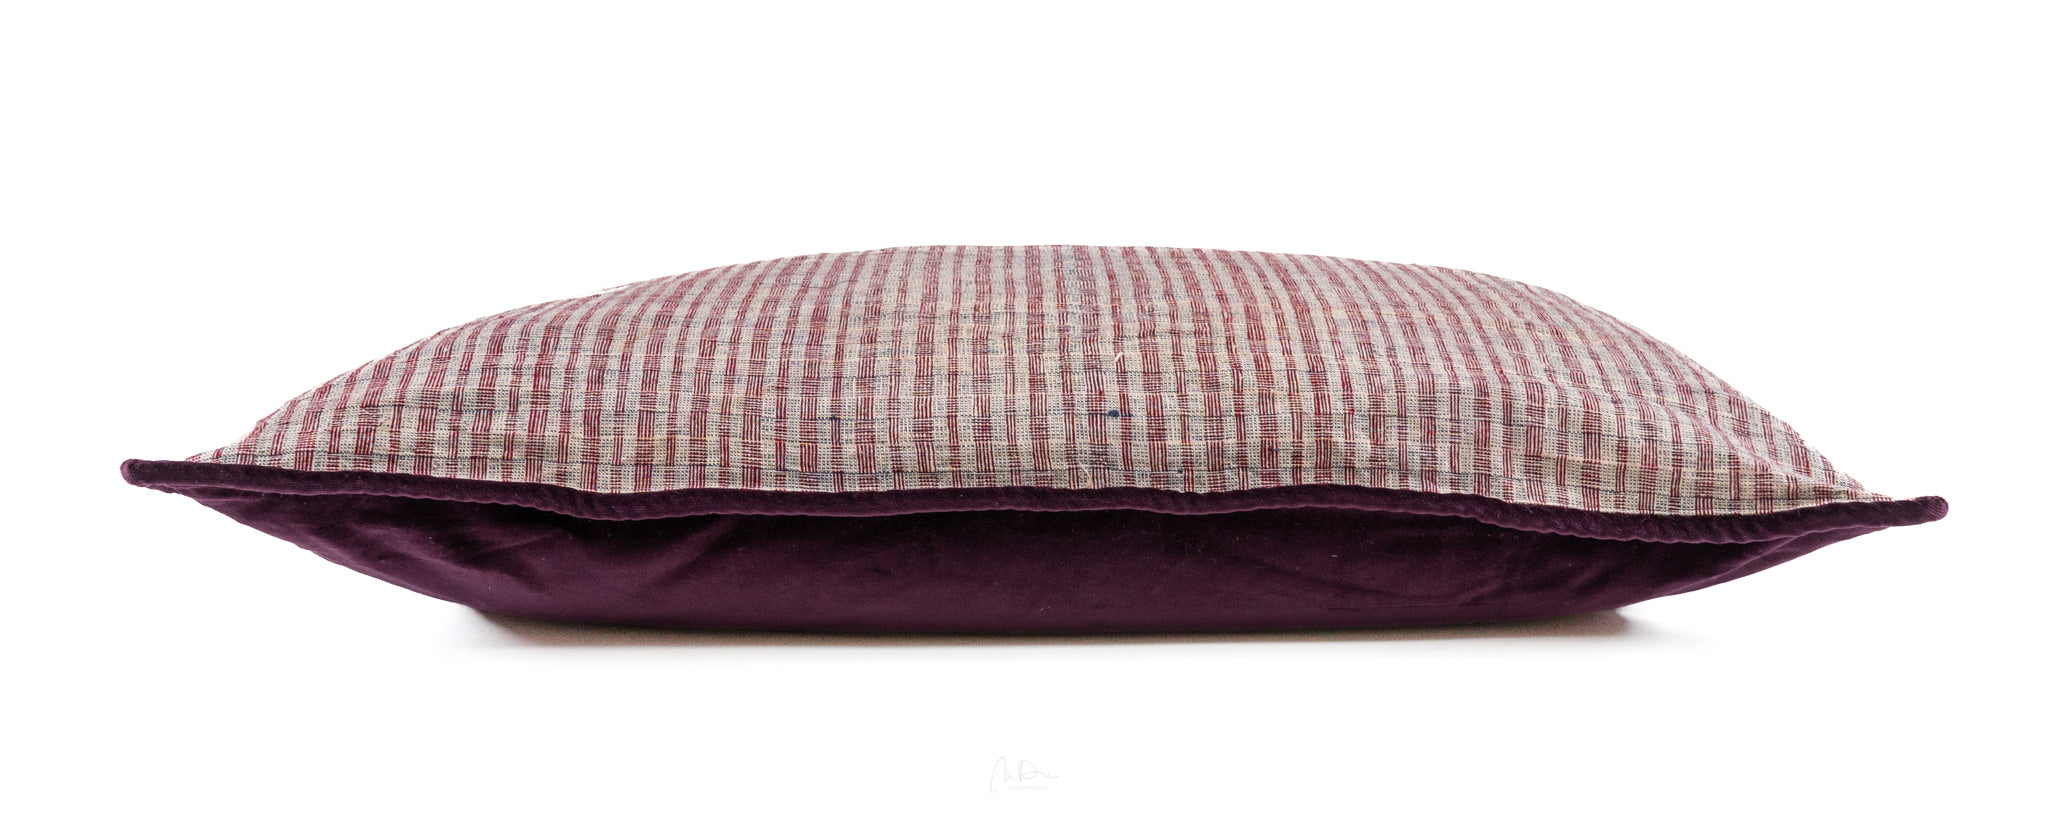 Pillow: Handwoven antique Bulgarian cotton - P241